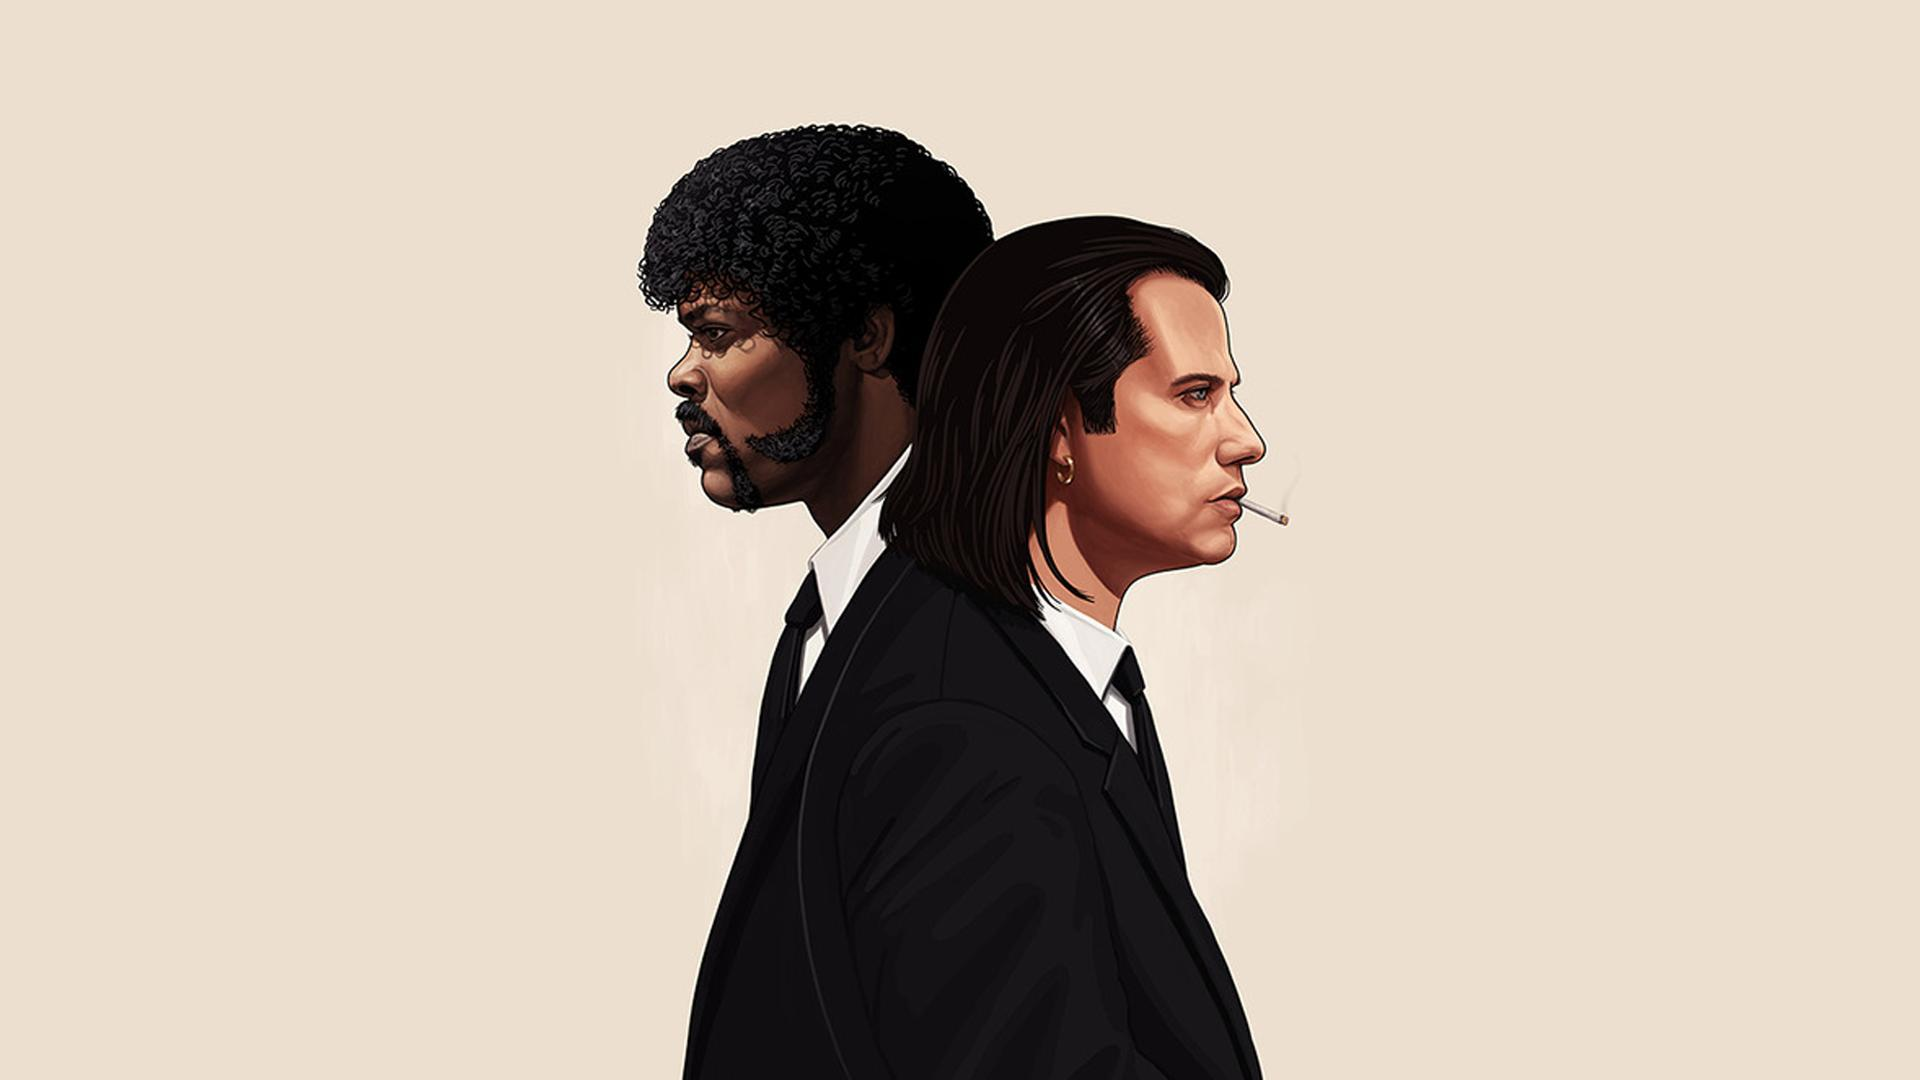 Pulp Fiction Vincent Vega Wallpaper for iPhone X Free rh